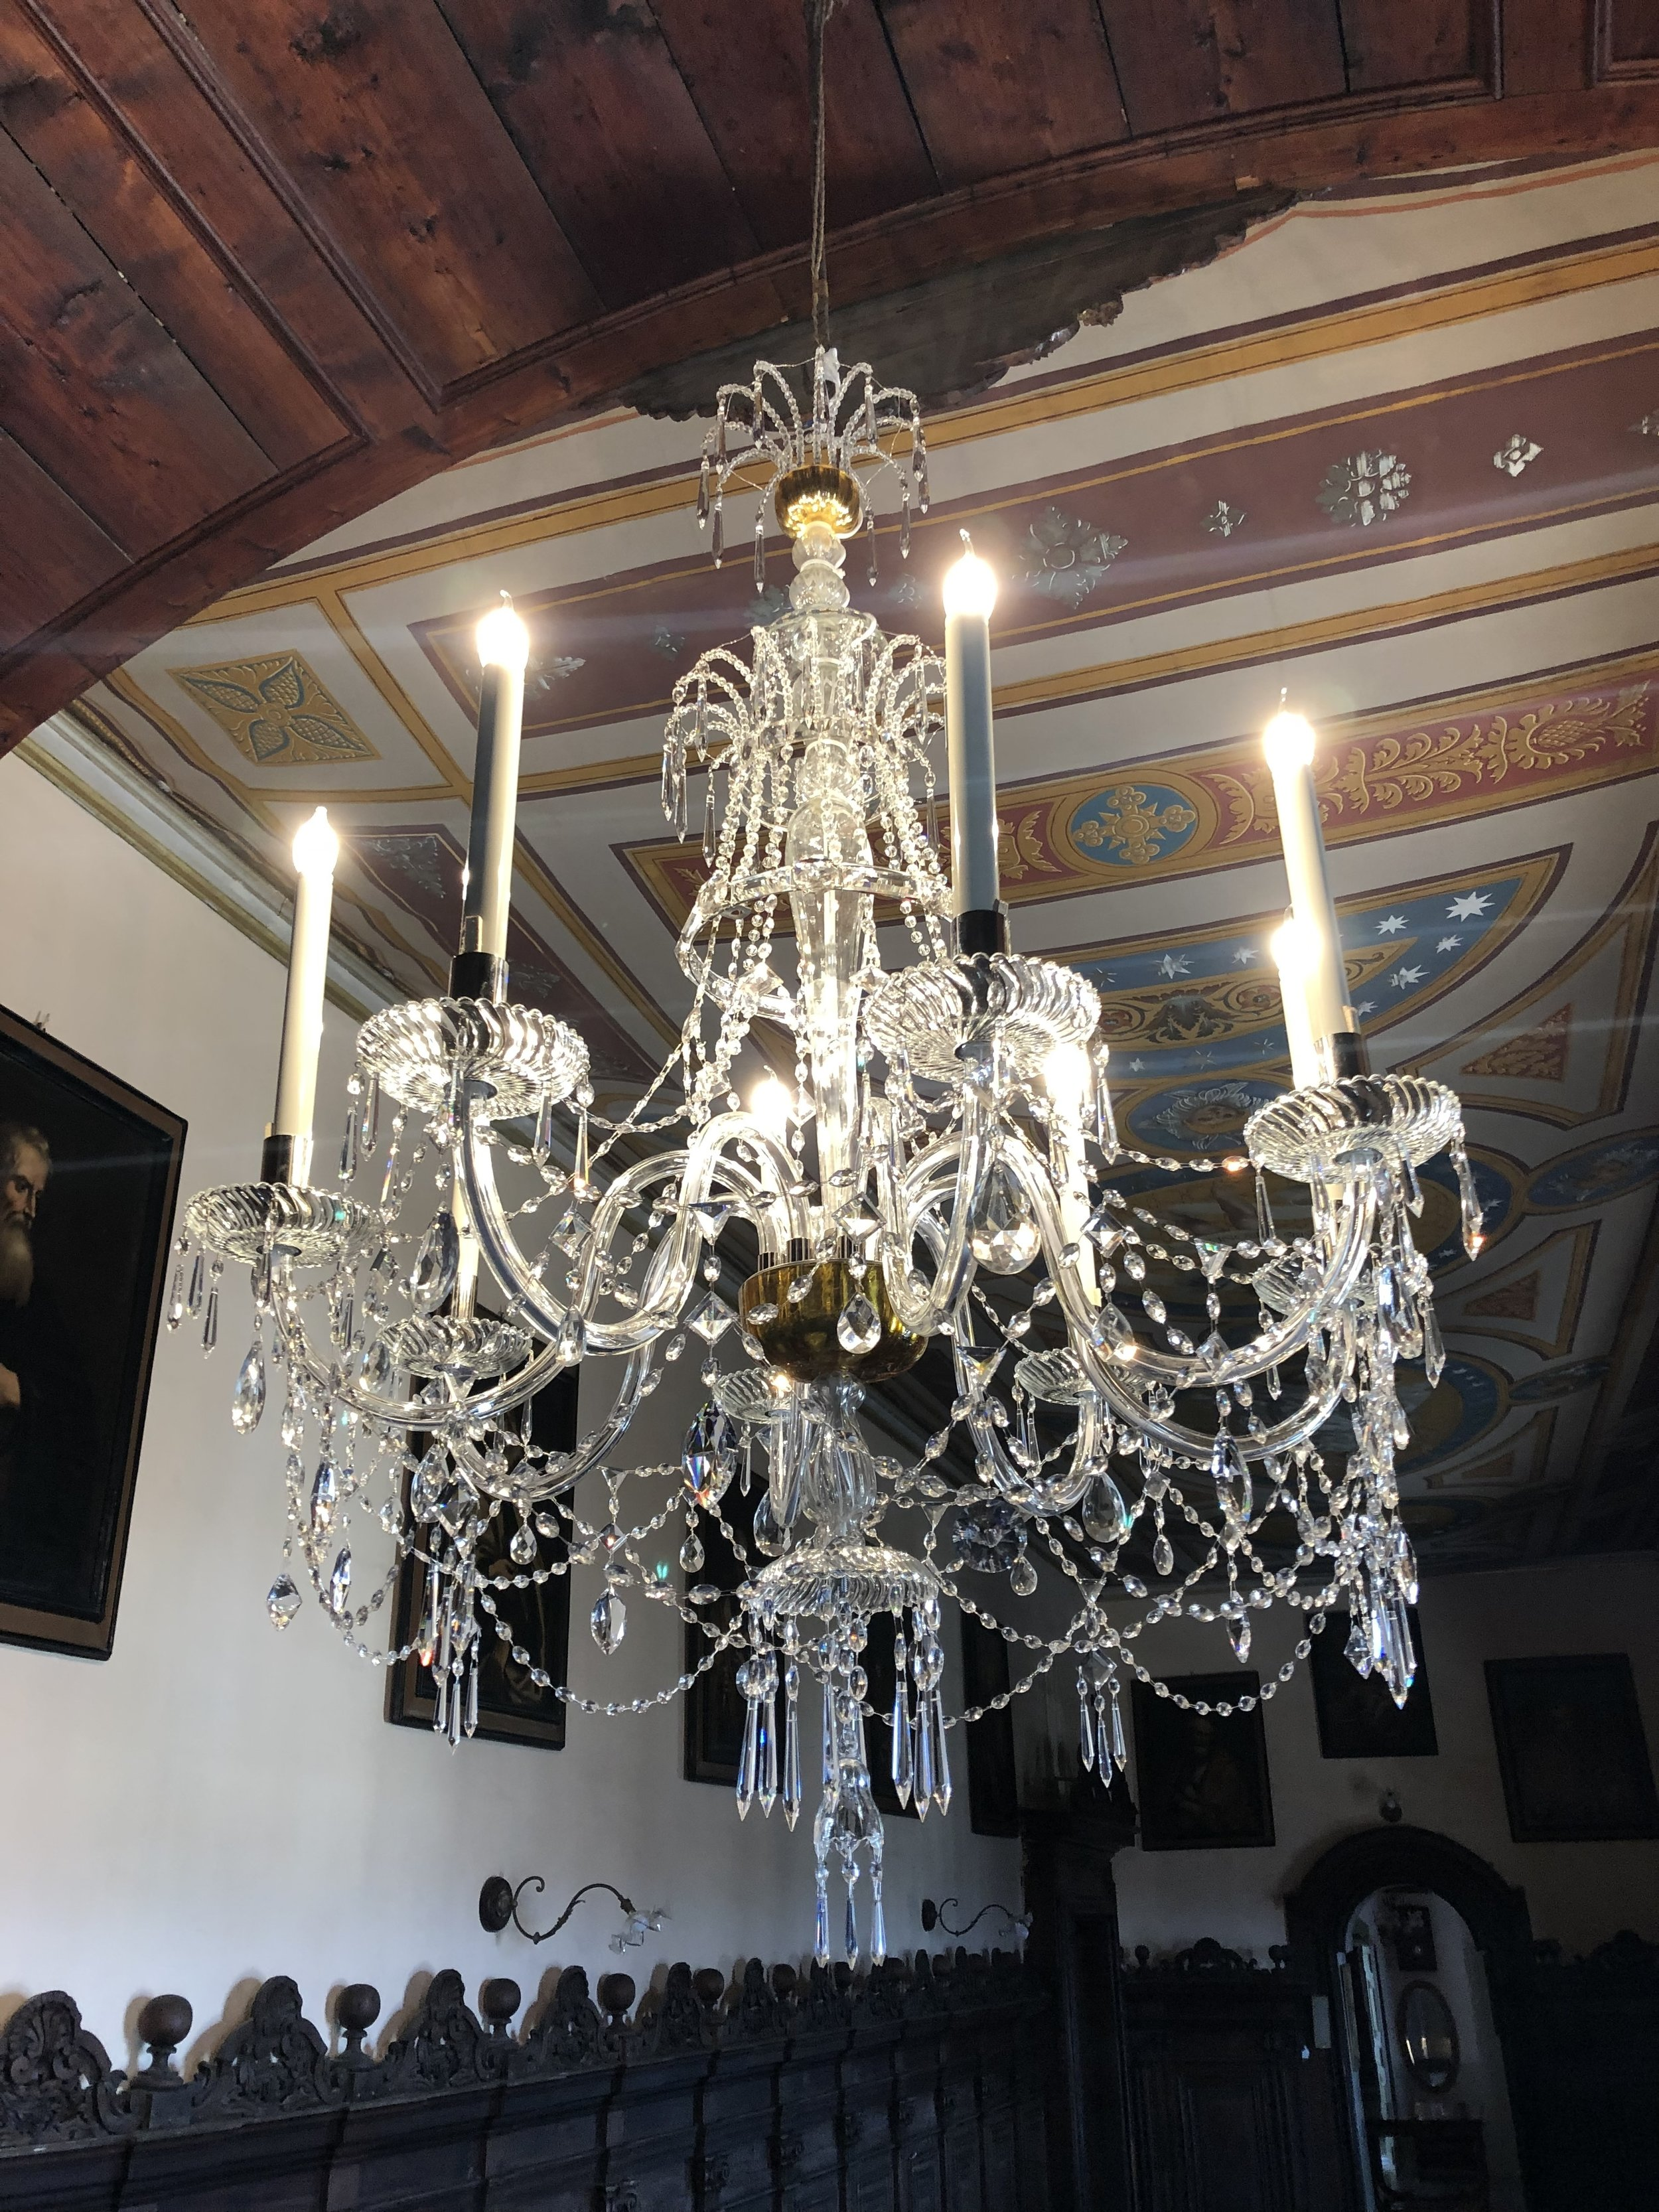 Close up view of the restored chandelier